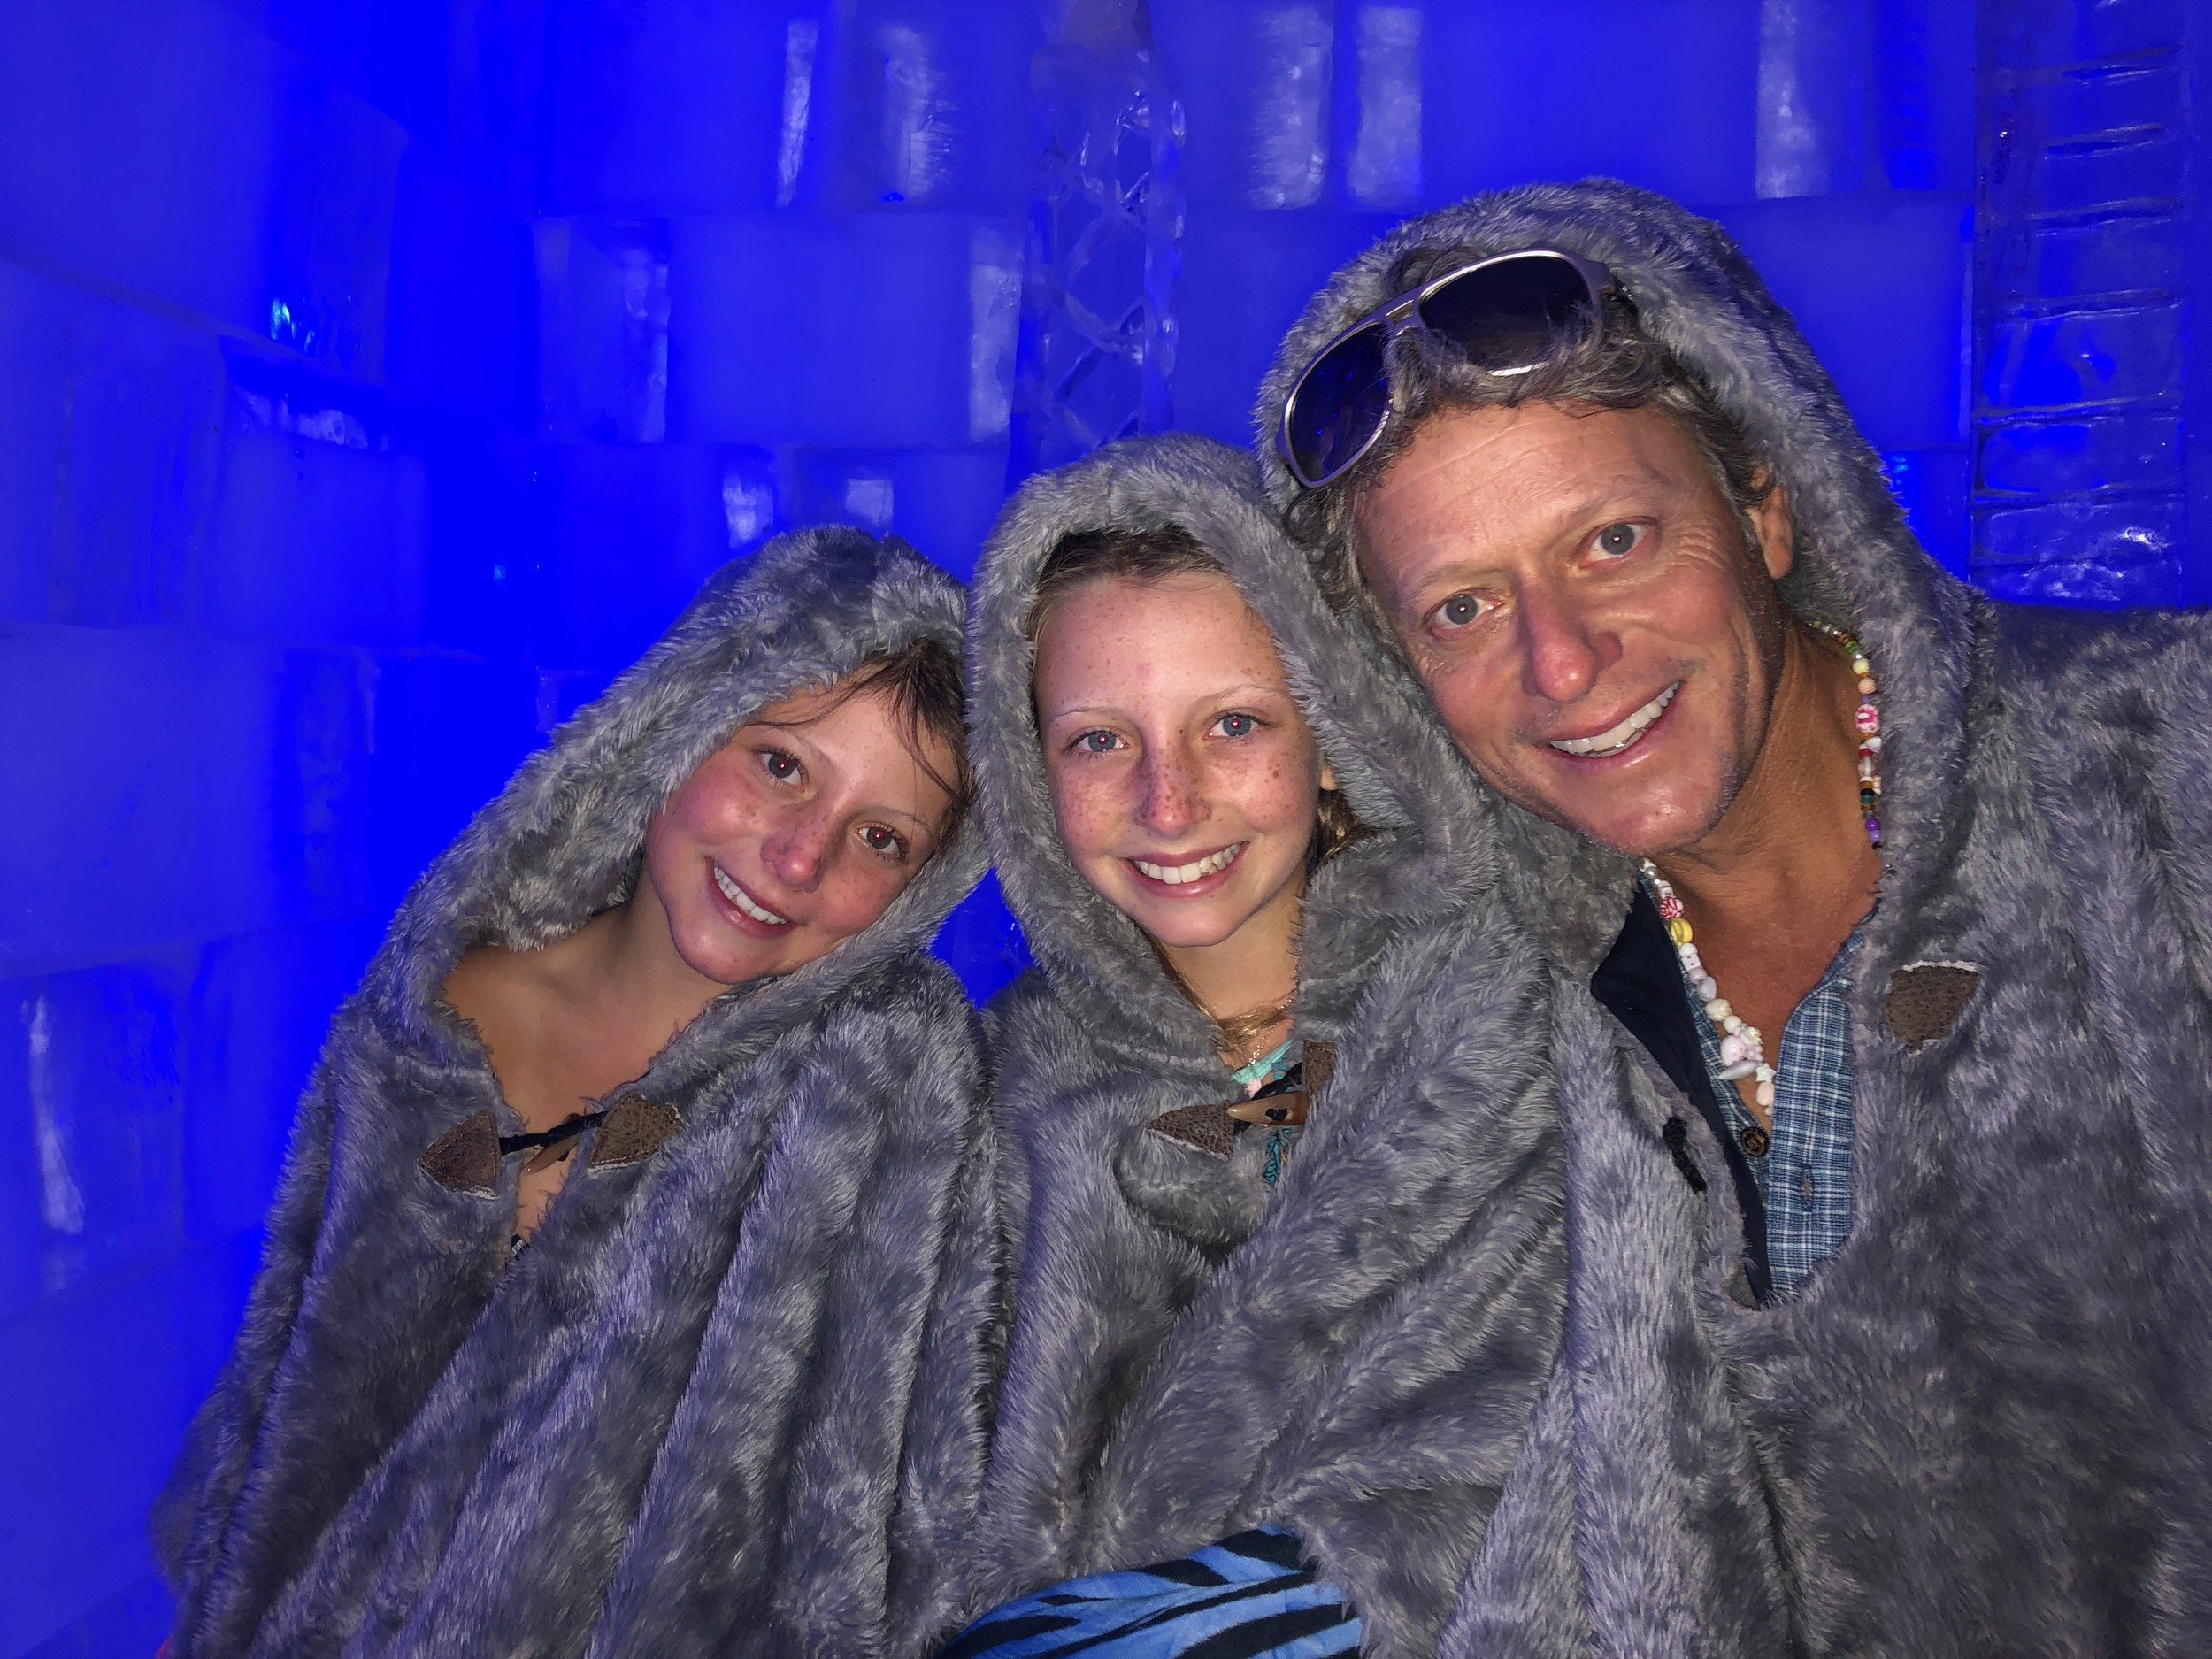 Inside the Ice Bar